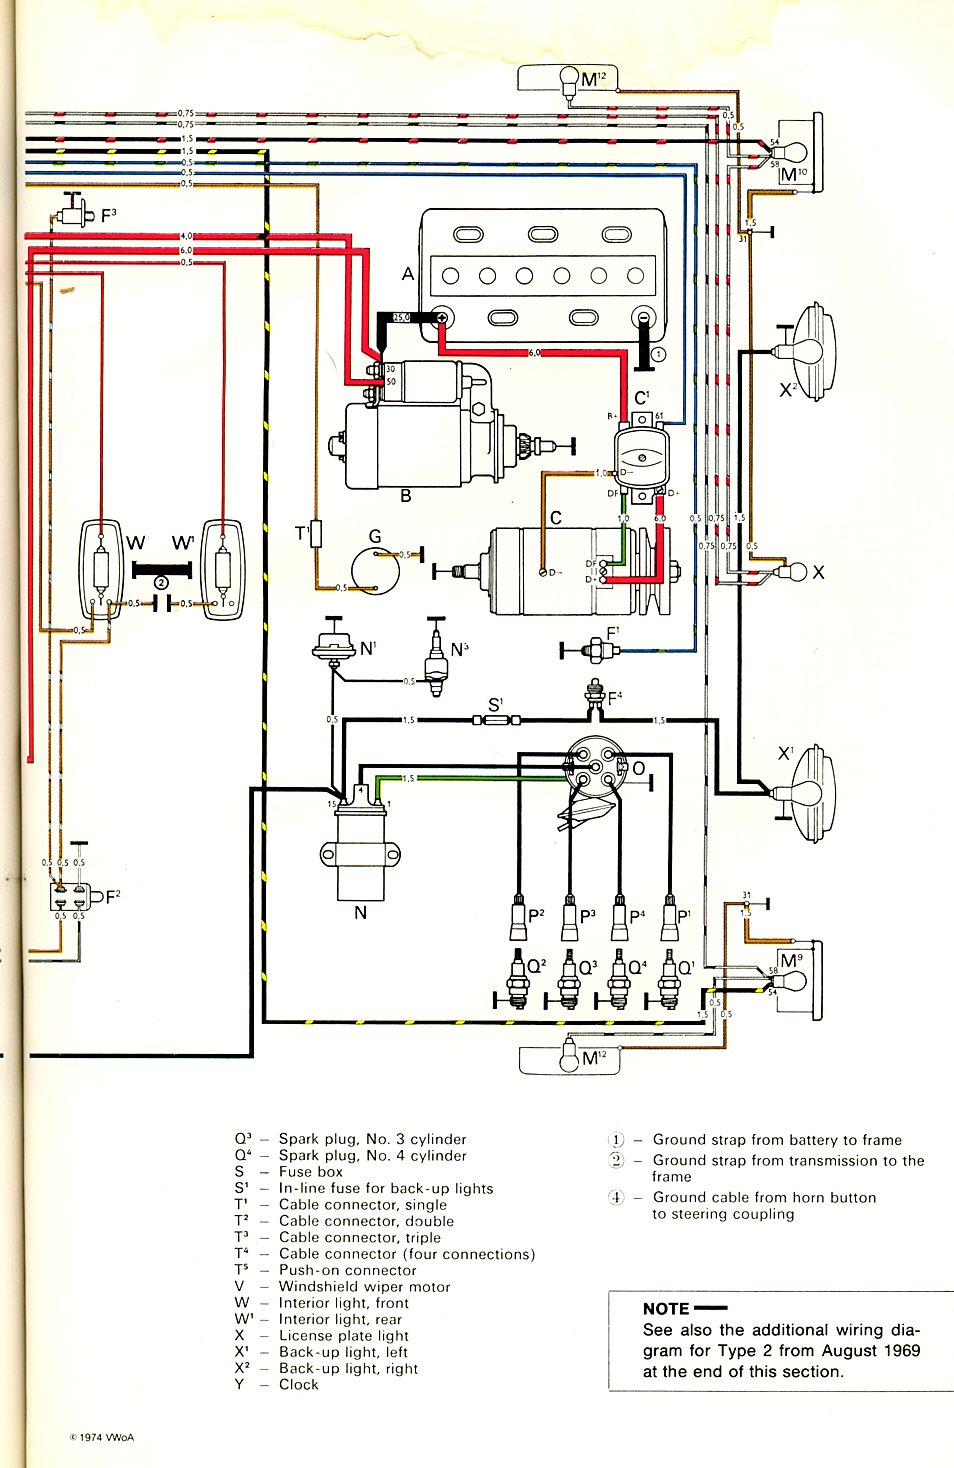 baybus_70b thesamba com type 2 wiring diagrams Electrical Wiring Diagrams at eliteediting.co